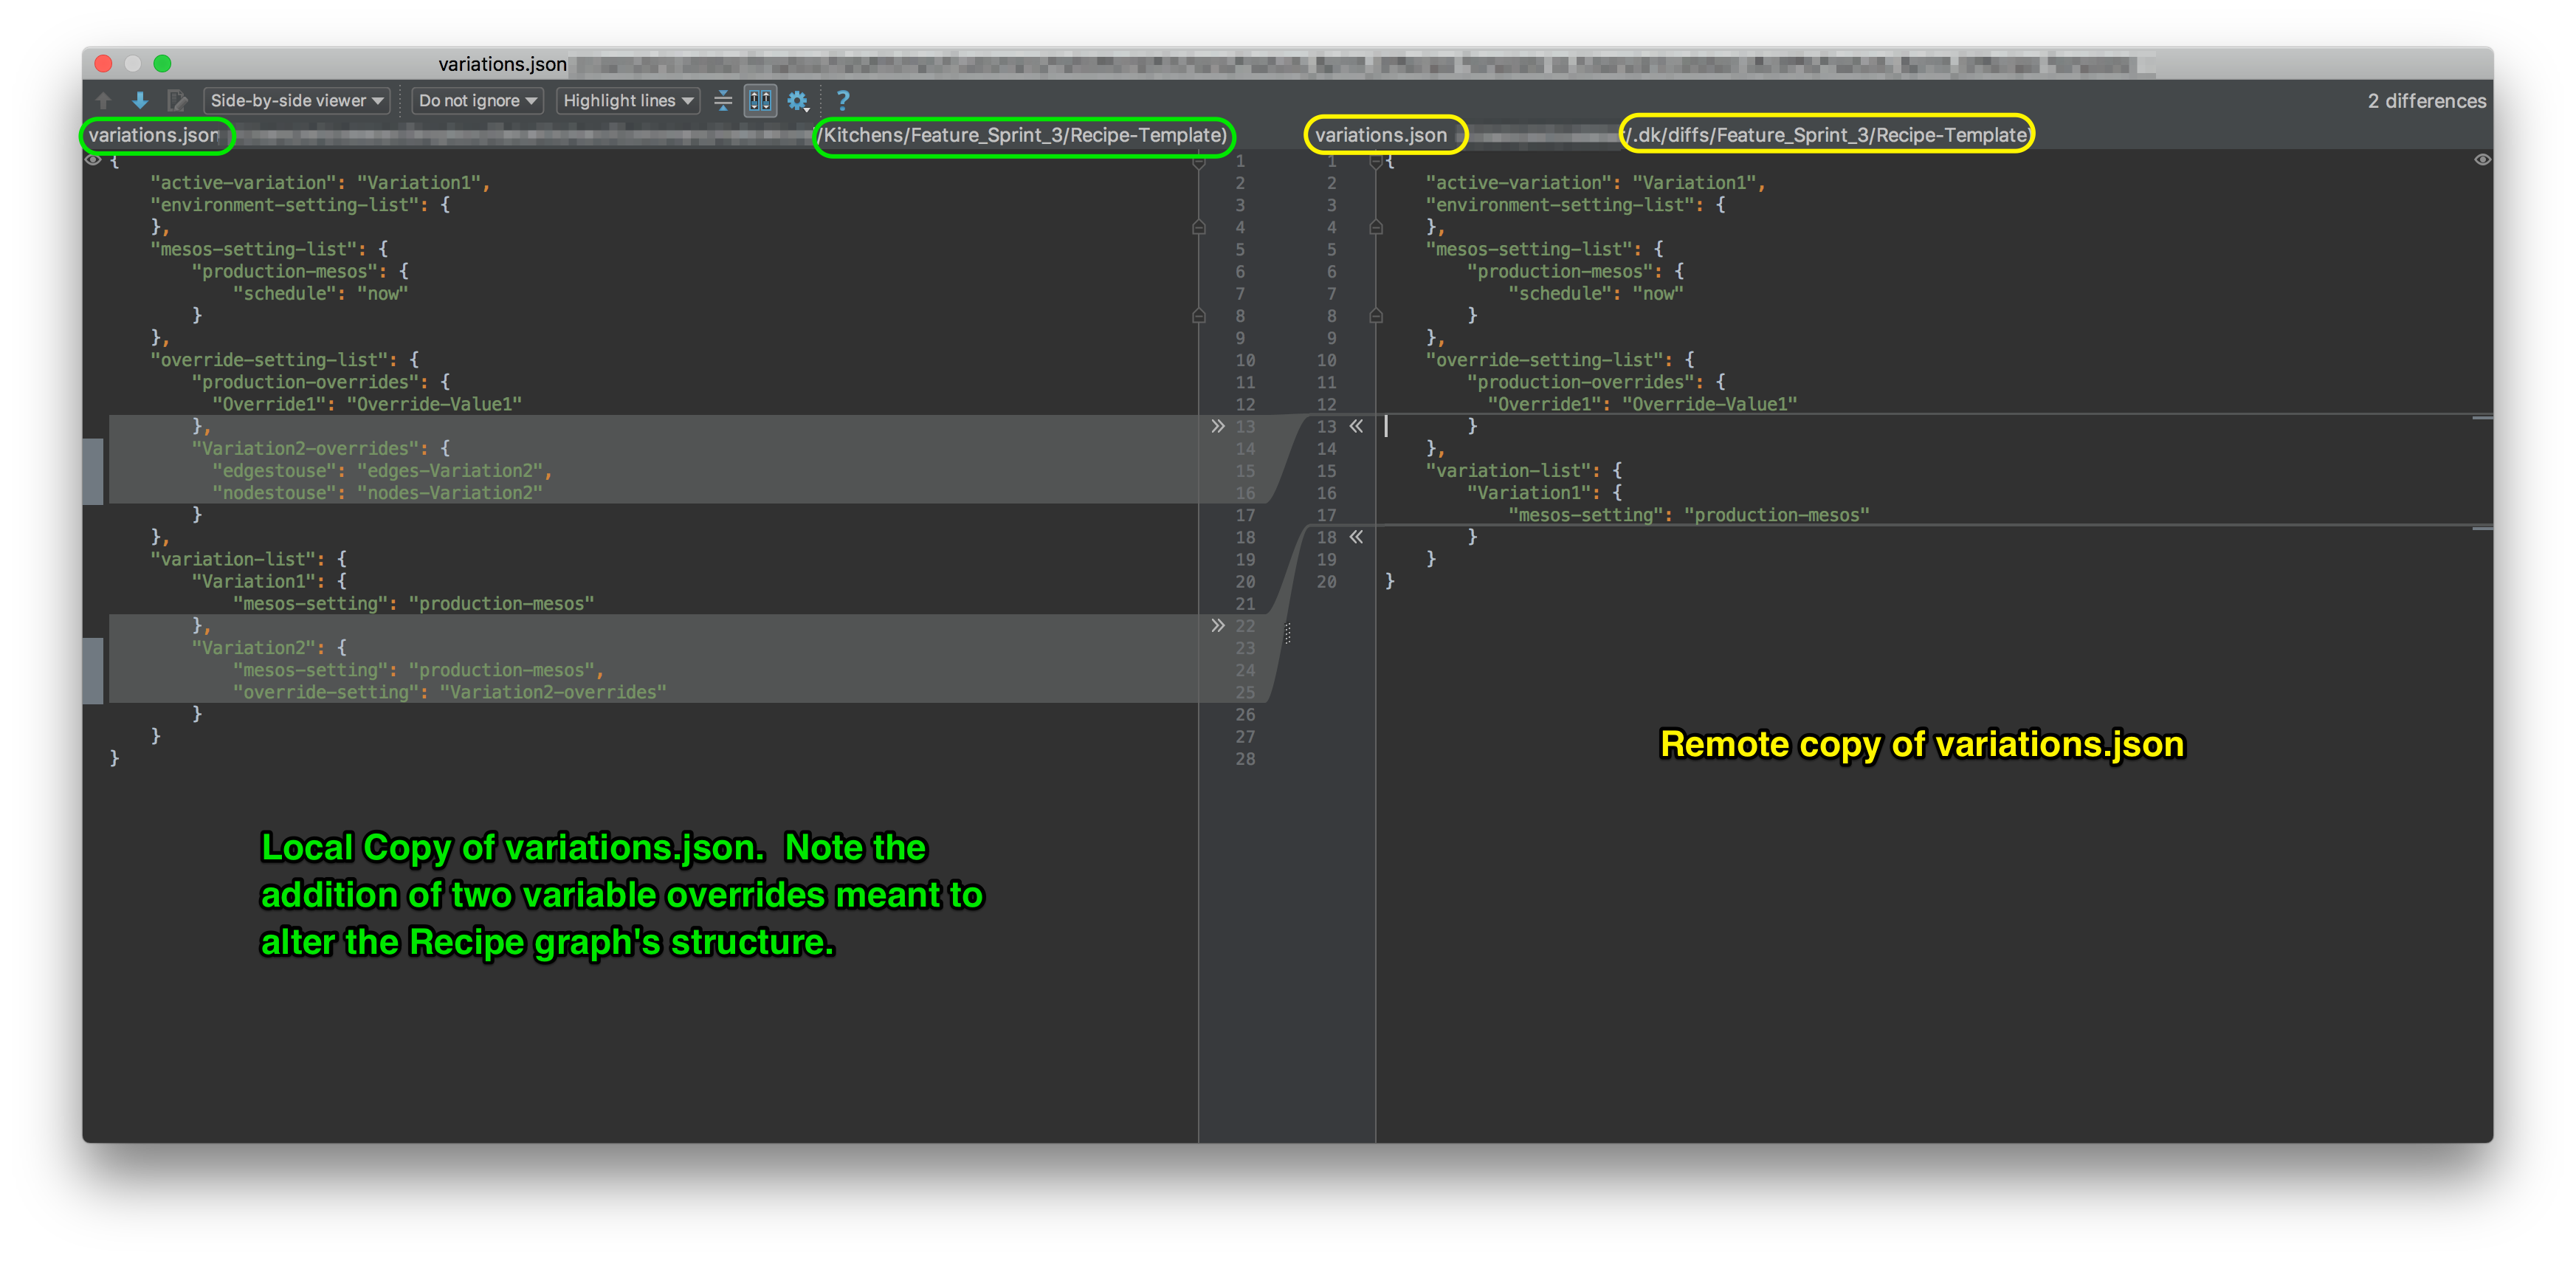 File differential between *local* and *remote* copies of **variations.json**.